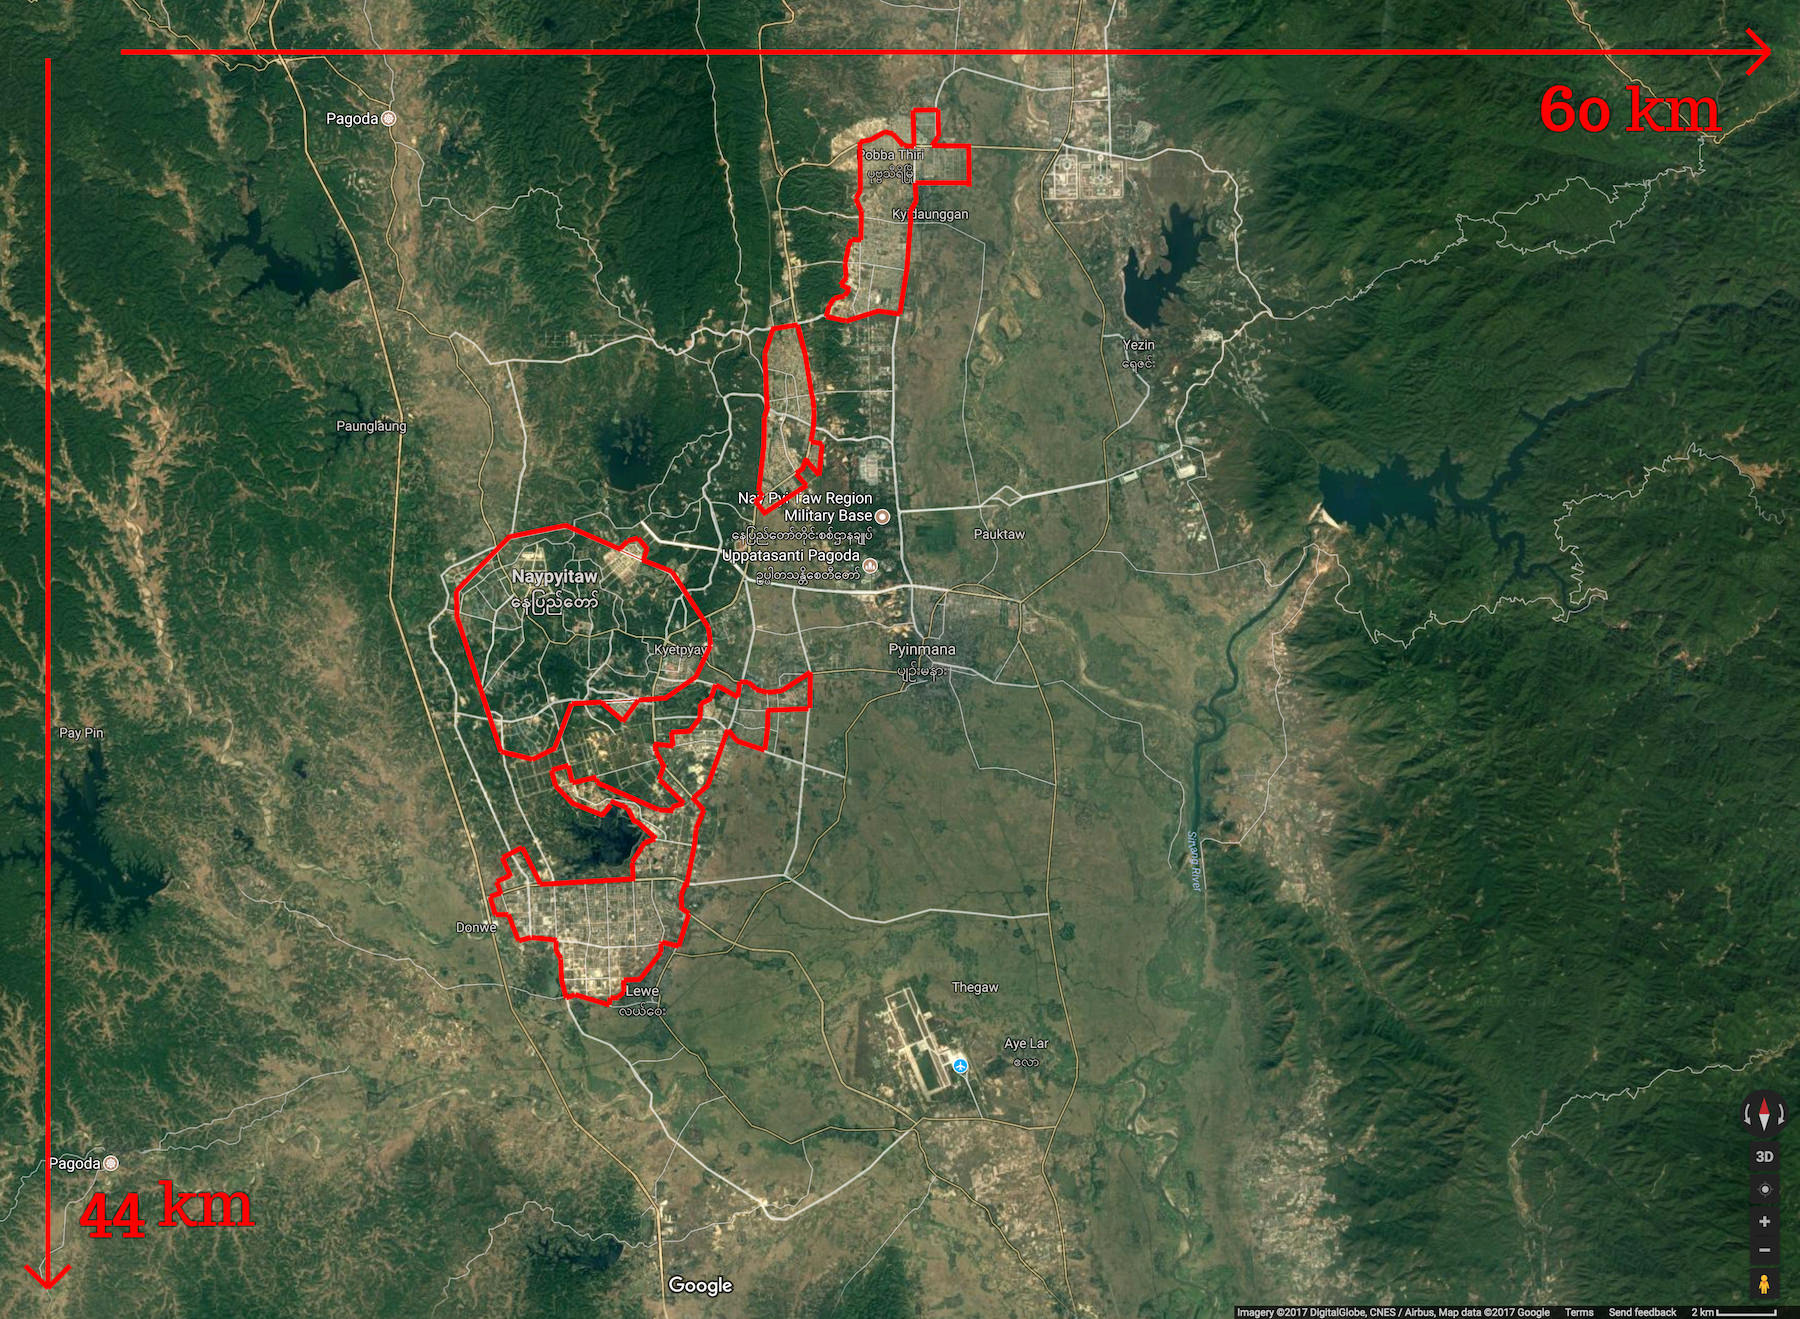 A map showing the true size of Naypyidaw, Myanmar.